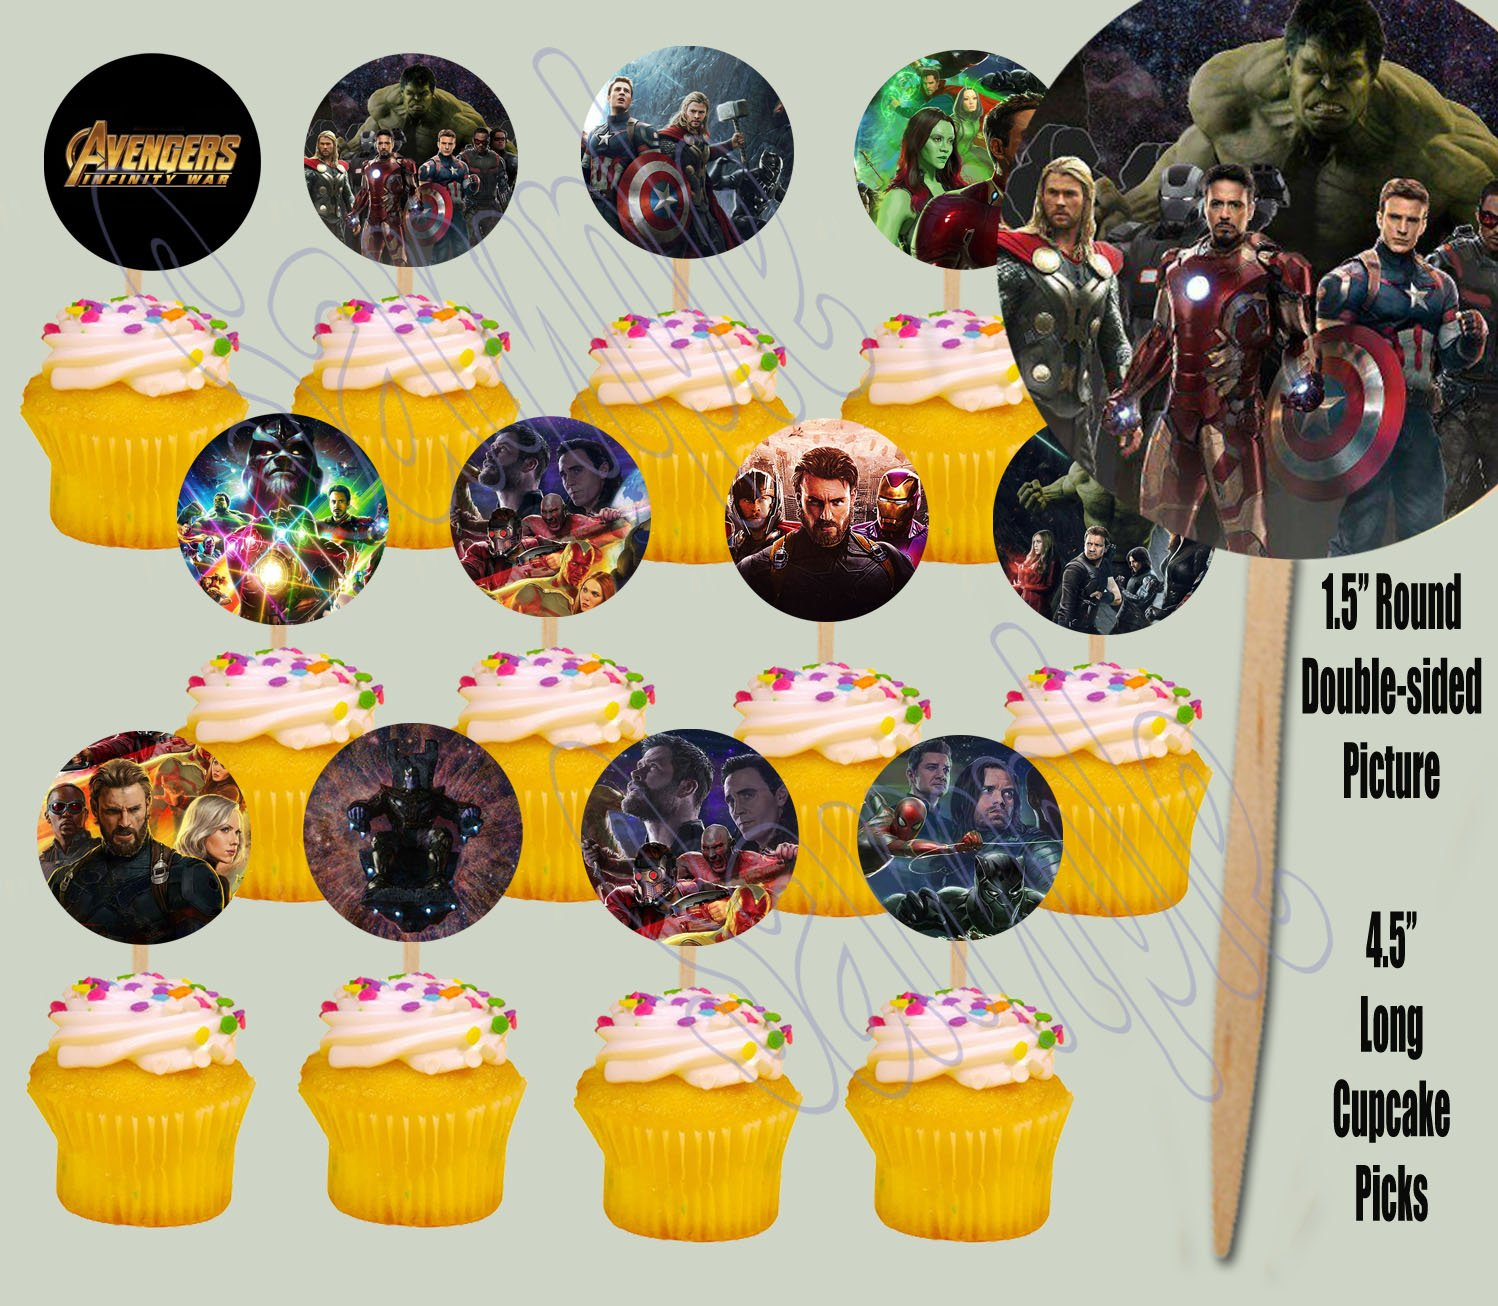 Amazon.com: Party Over Here Avengers Infinity War Movie Cupcake ...